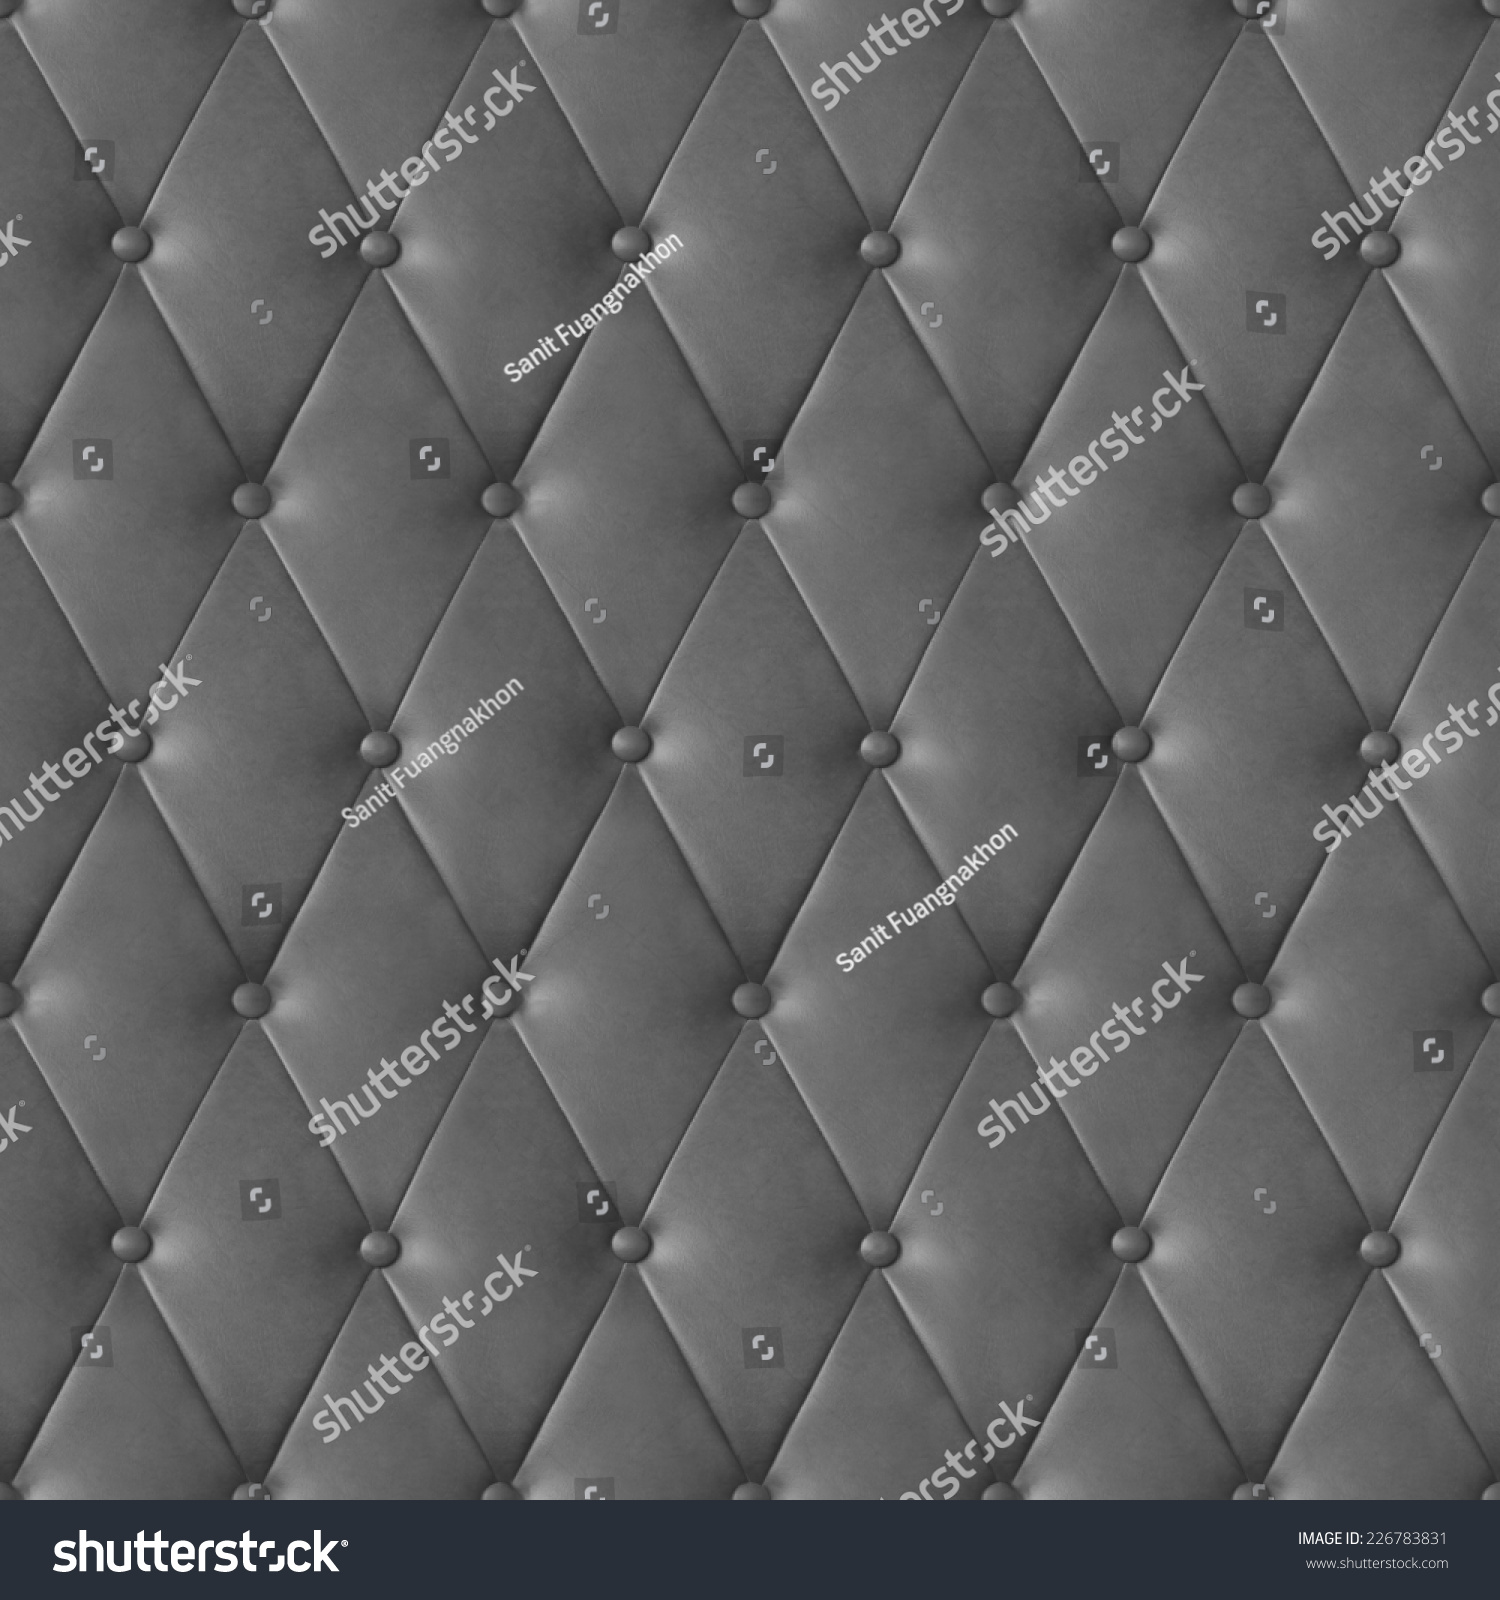 Black leather chair texture - Photo Rectangle Diamond Stitched Leather Furniture Seamless Pattern For Background Or Texture